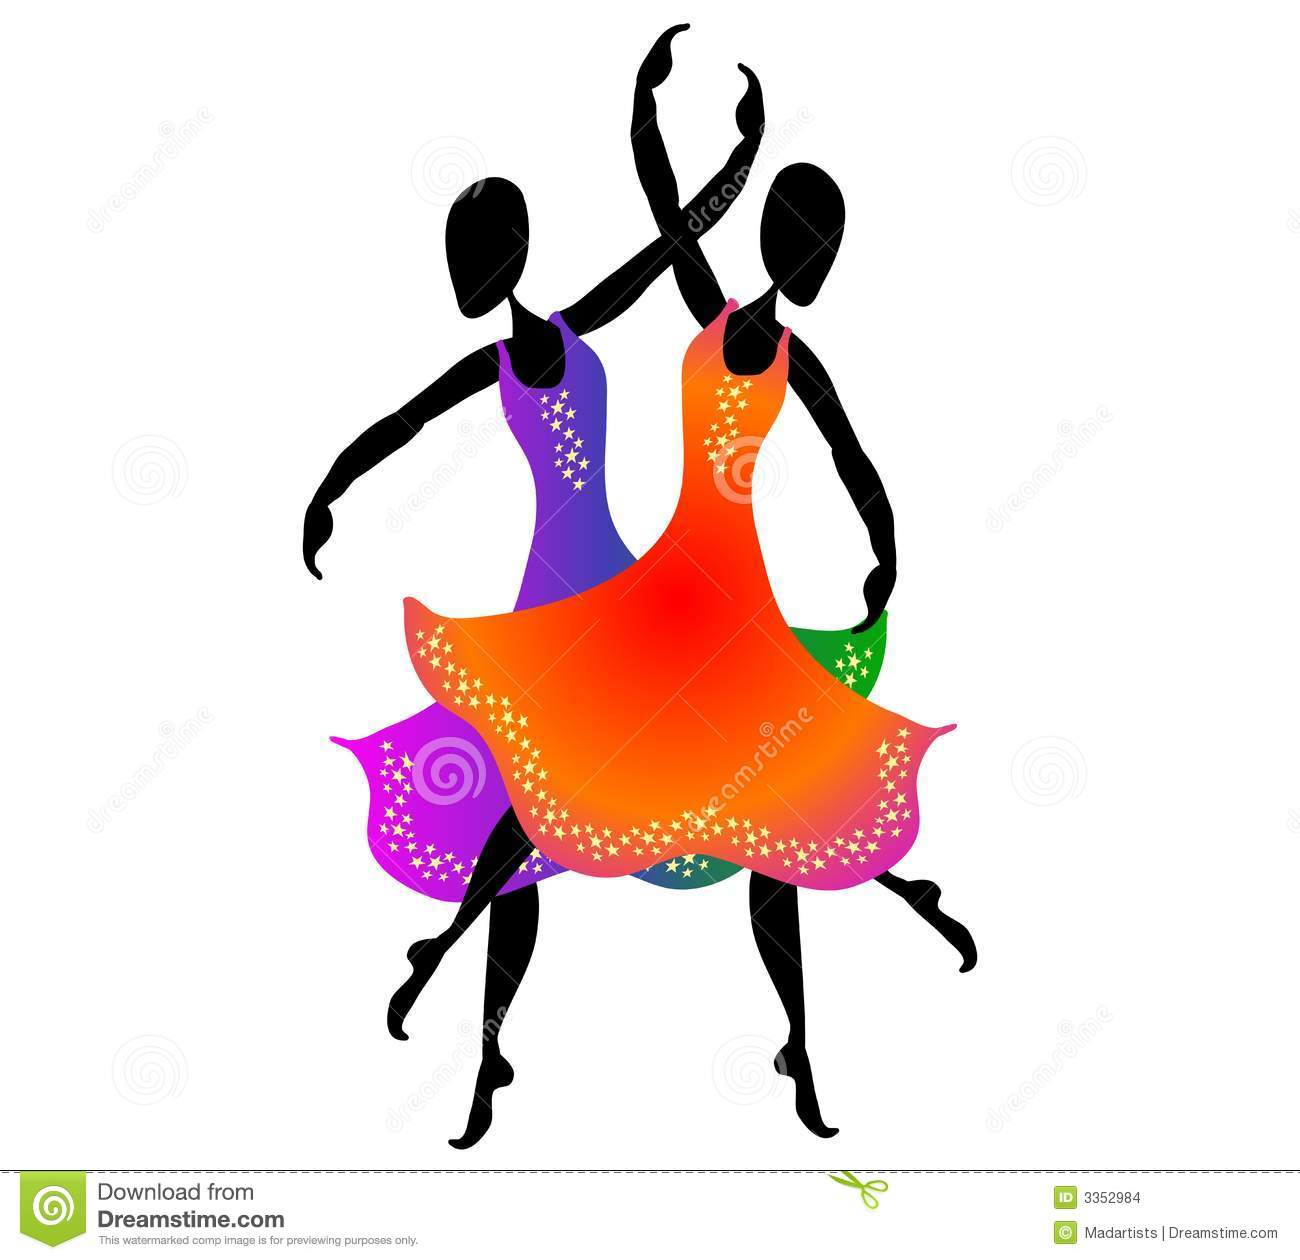 women dancing clip art 2 stock illustration illustration of clipart rh dreamstime com dancing clipart images dance clipart images